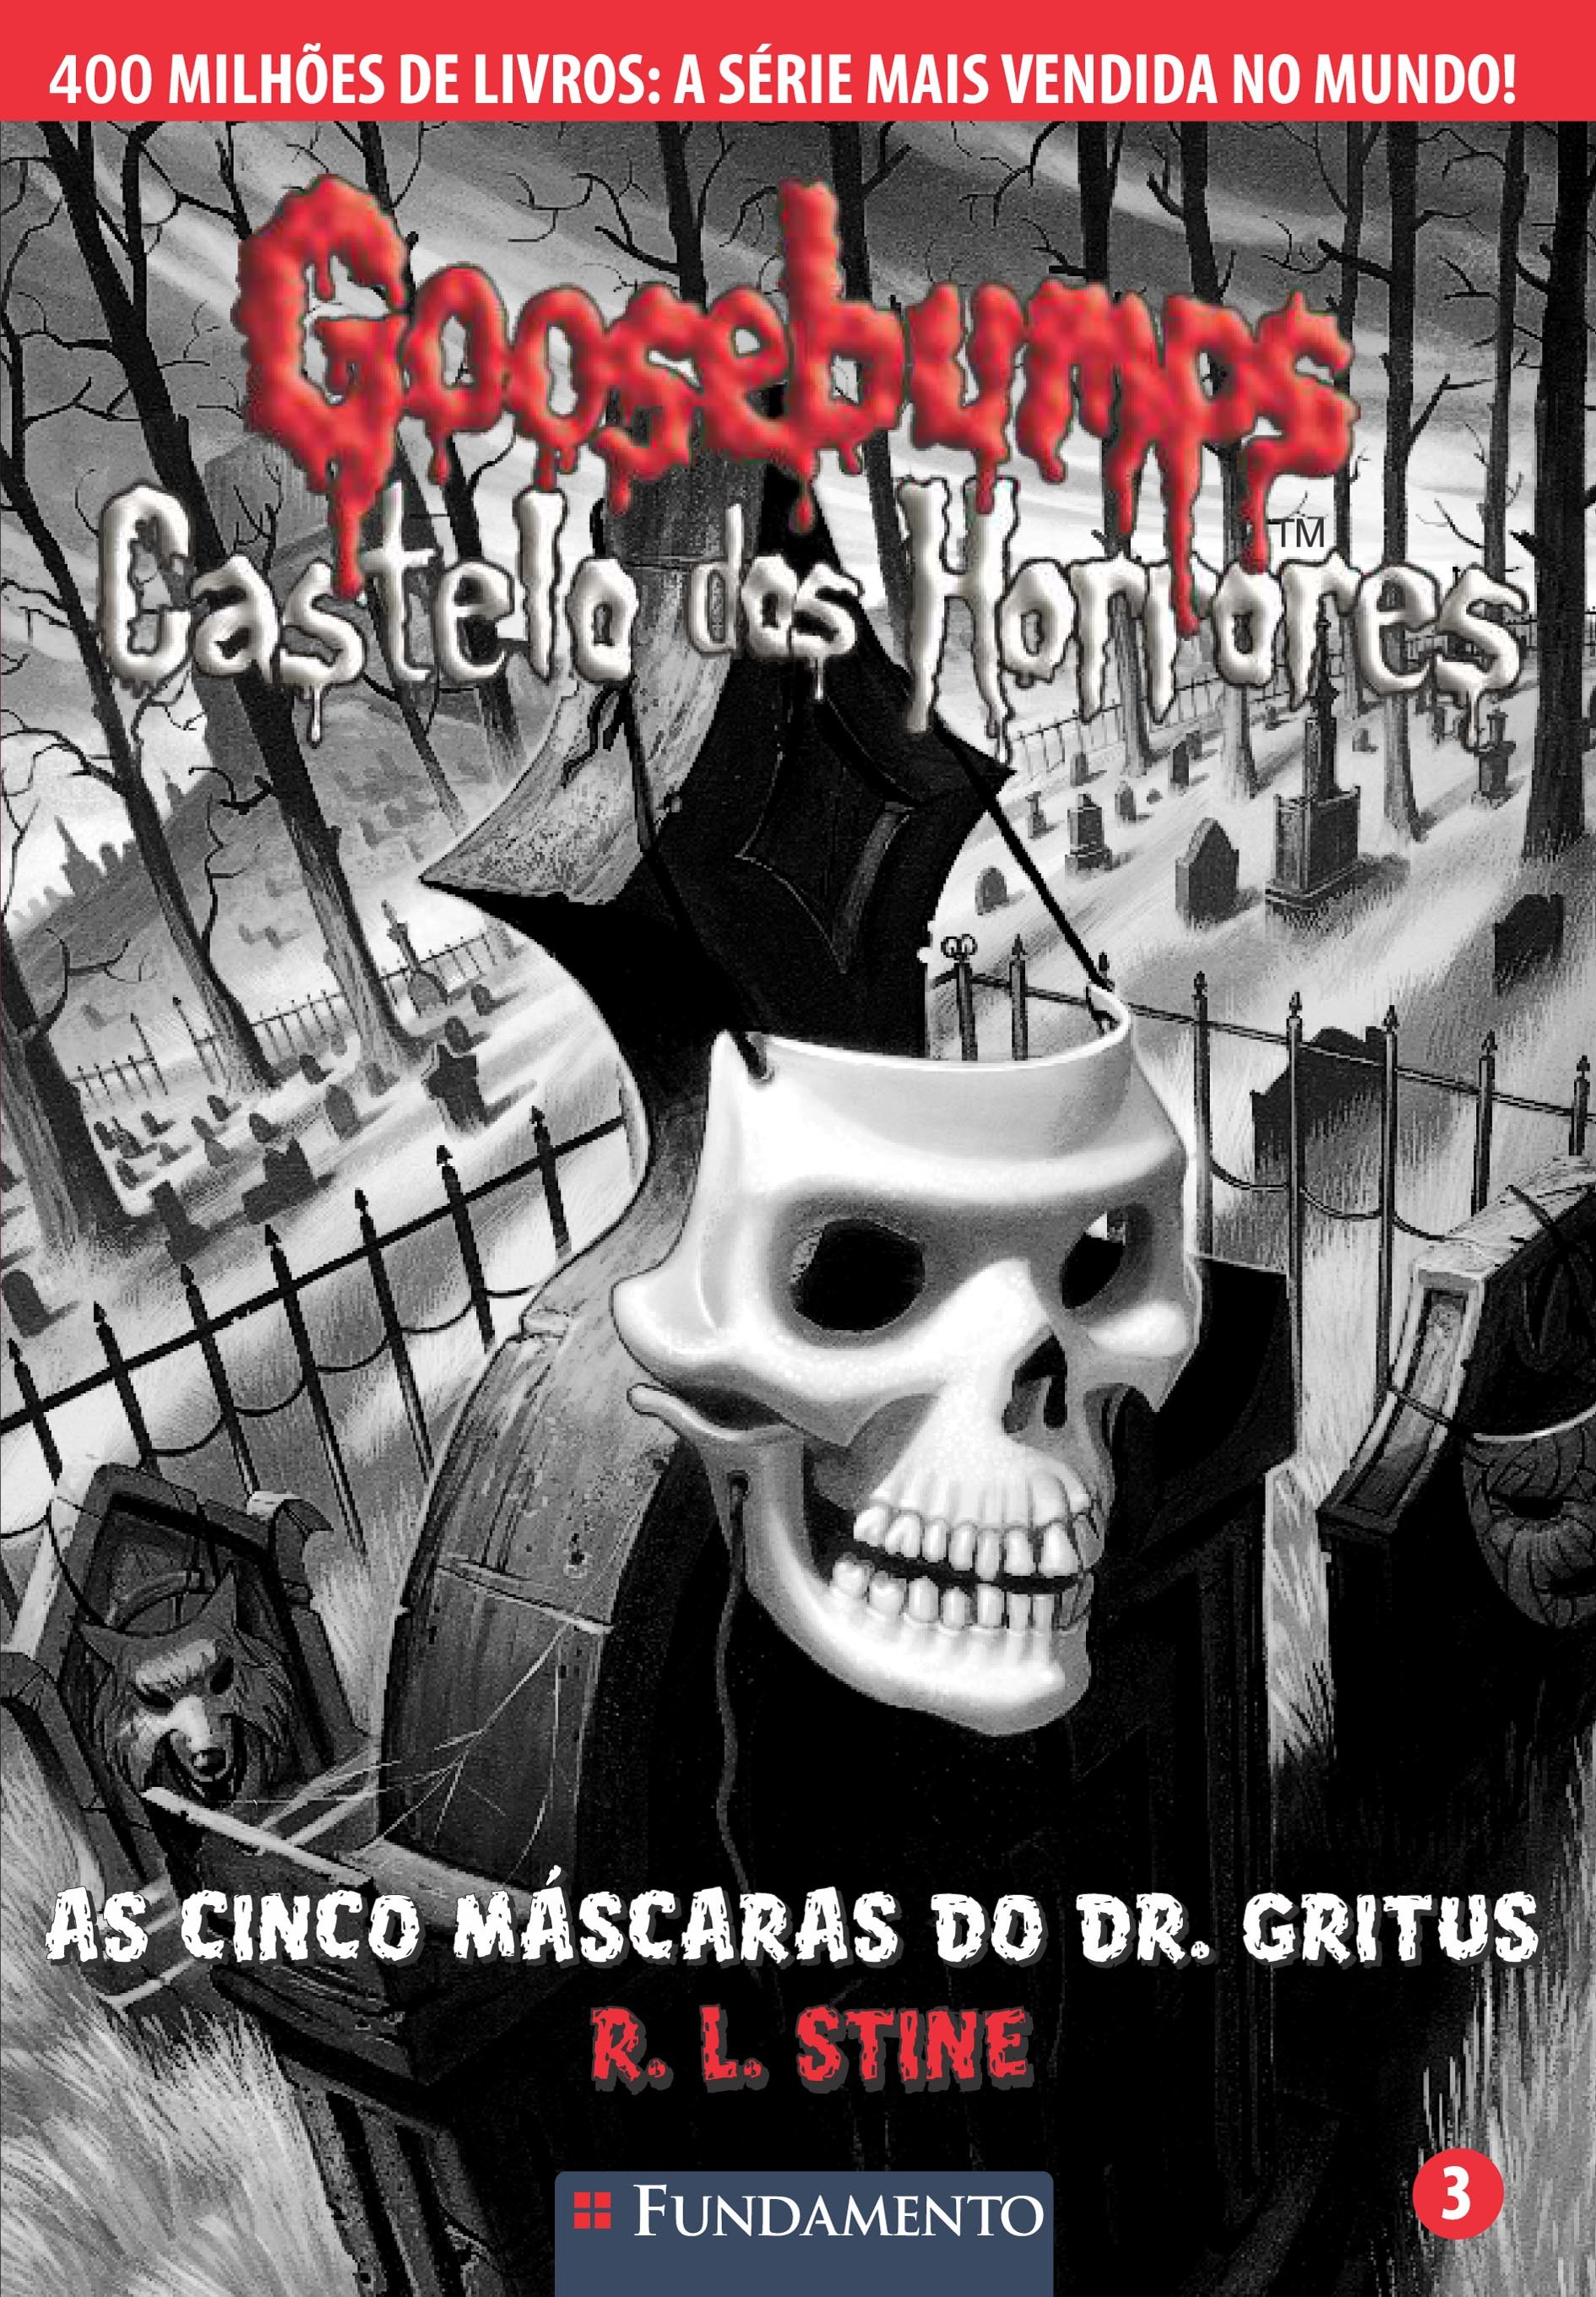 Goosebumps Castelo dos horrores 03 - As cinco máscaras do dr. Gritus